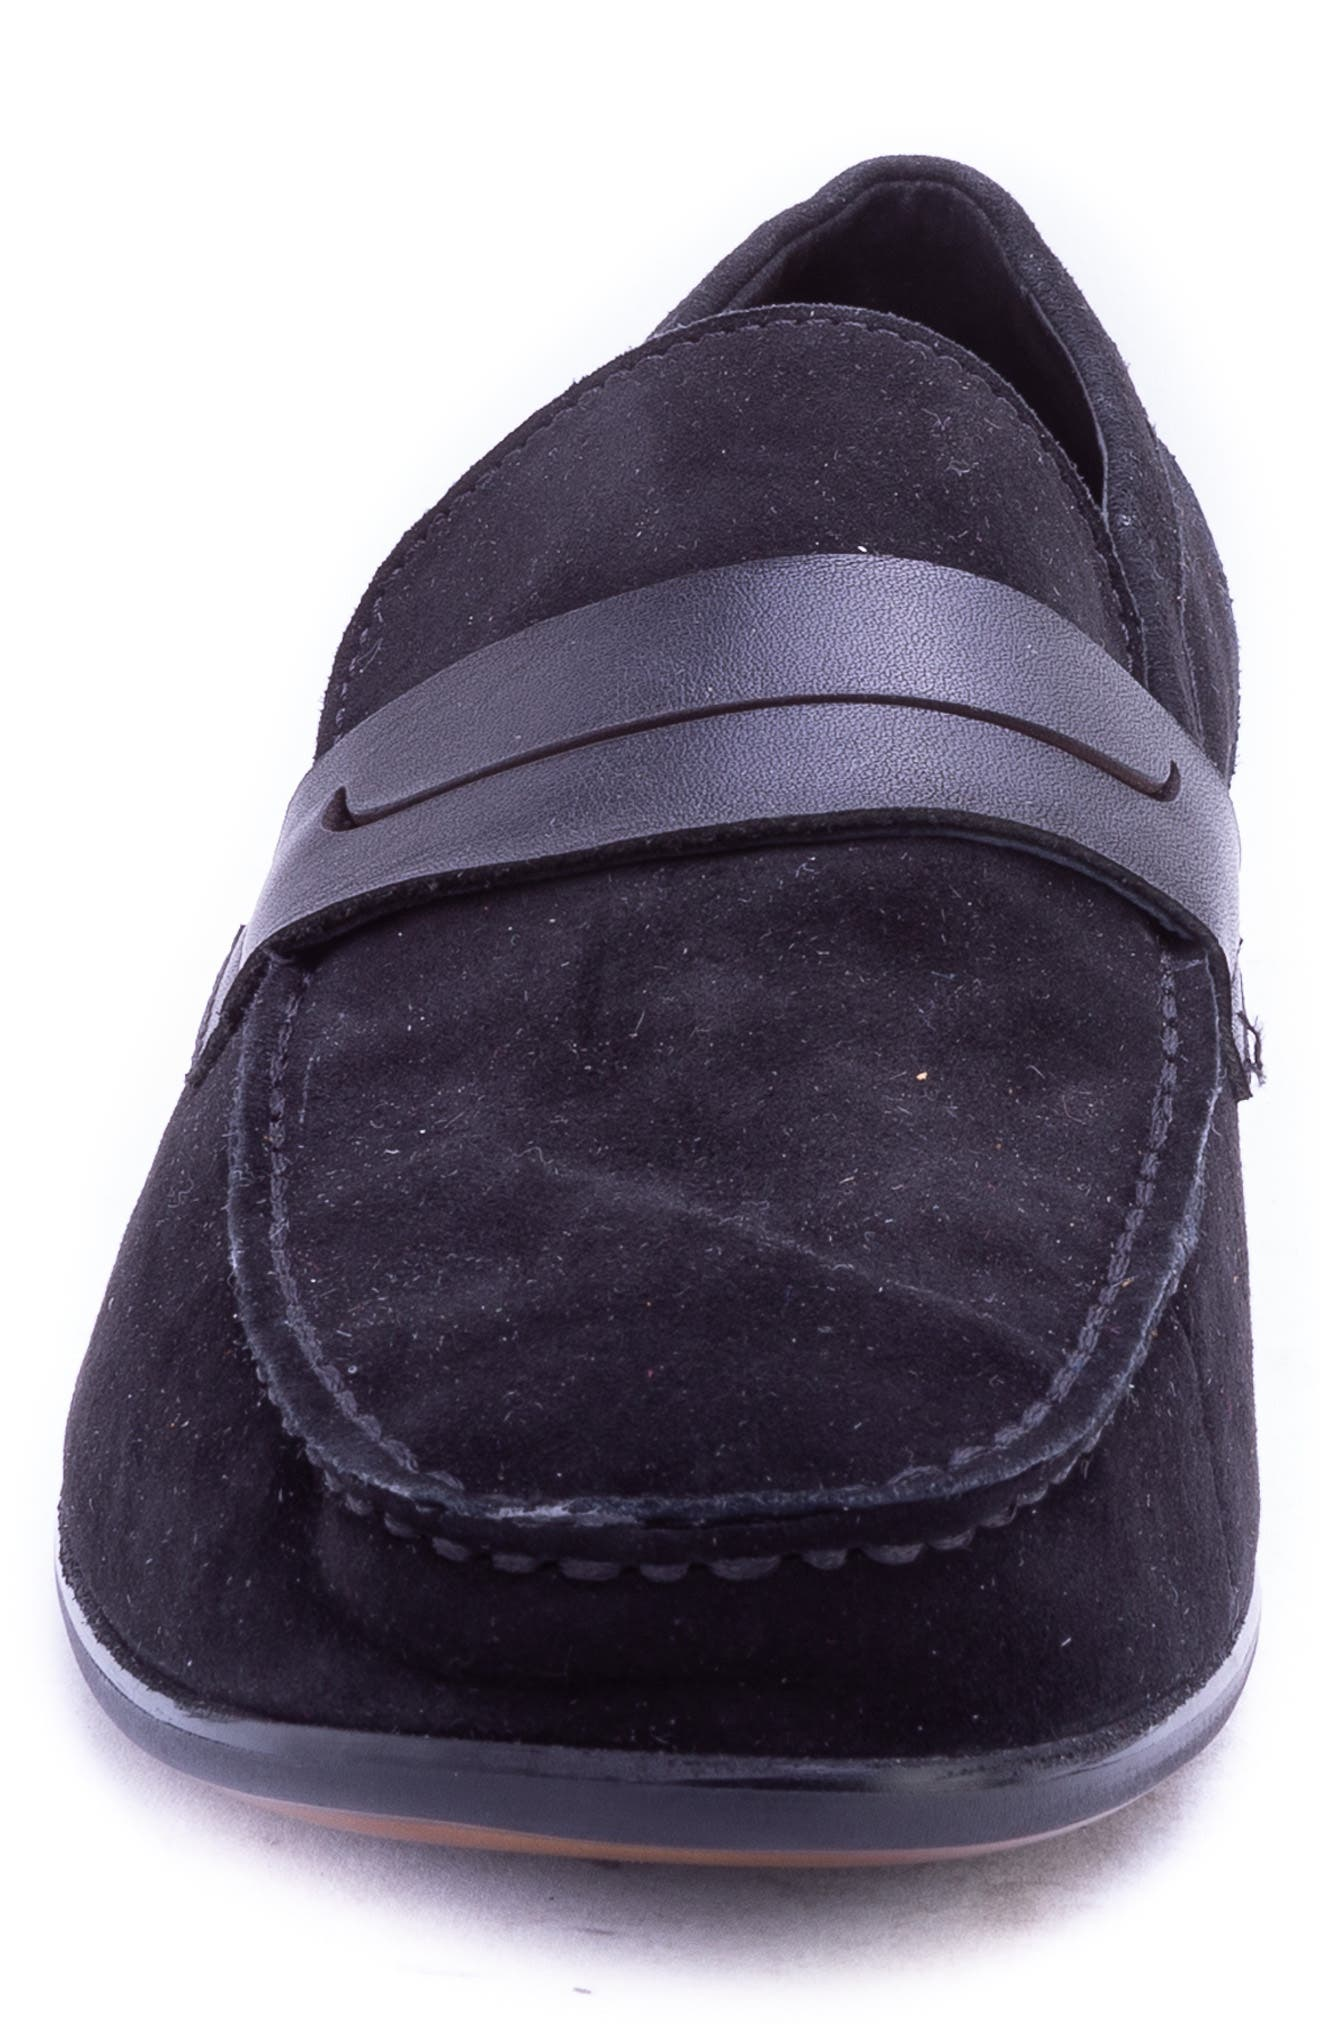 Opie Penny Loafer,                             Alternate thumbnail 4, color,                             BLACK SUEDE/ LEATHER